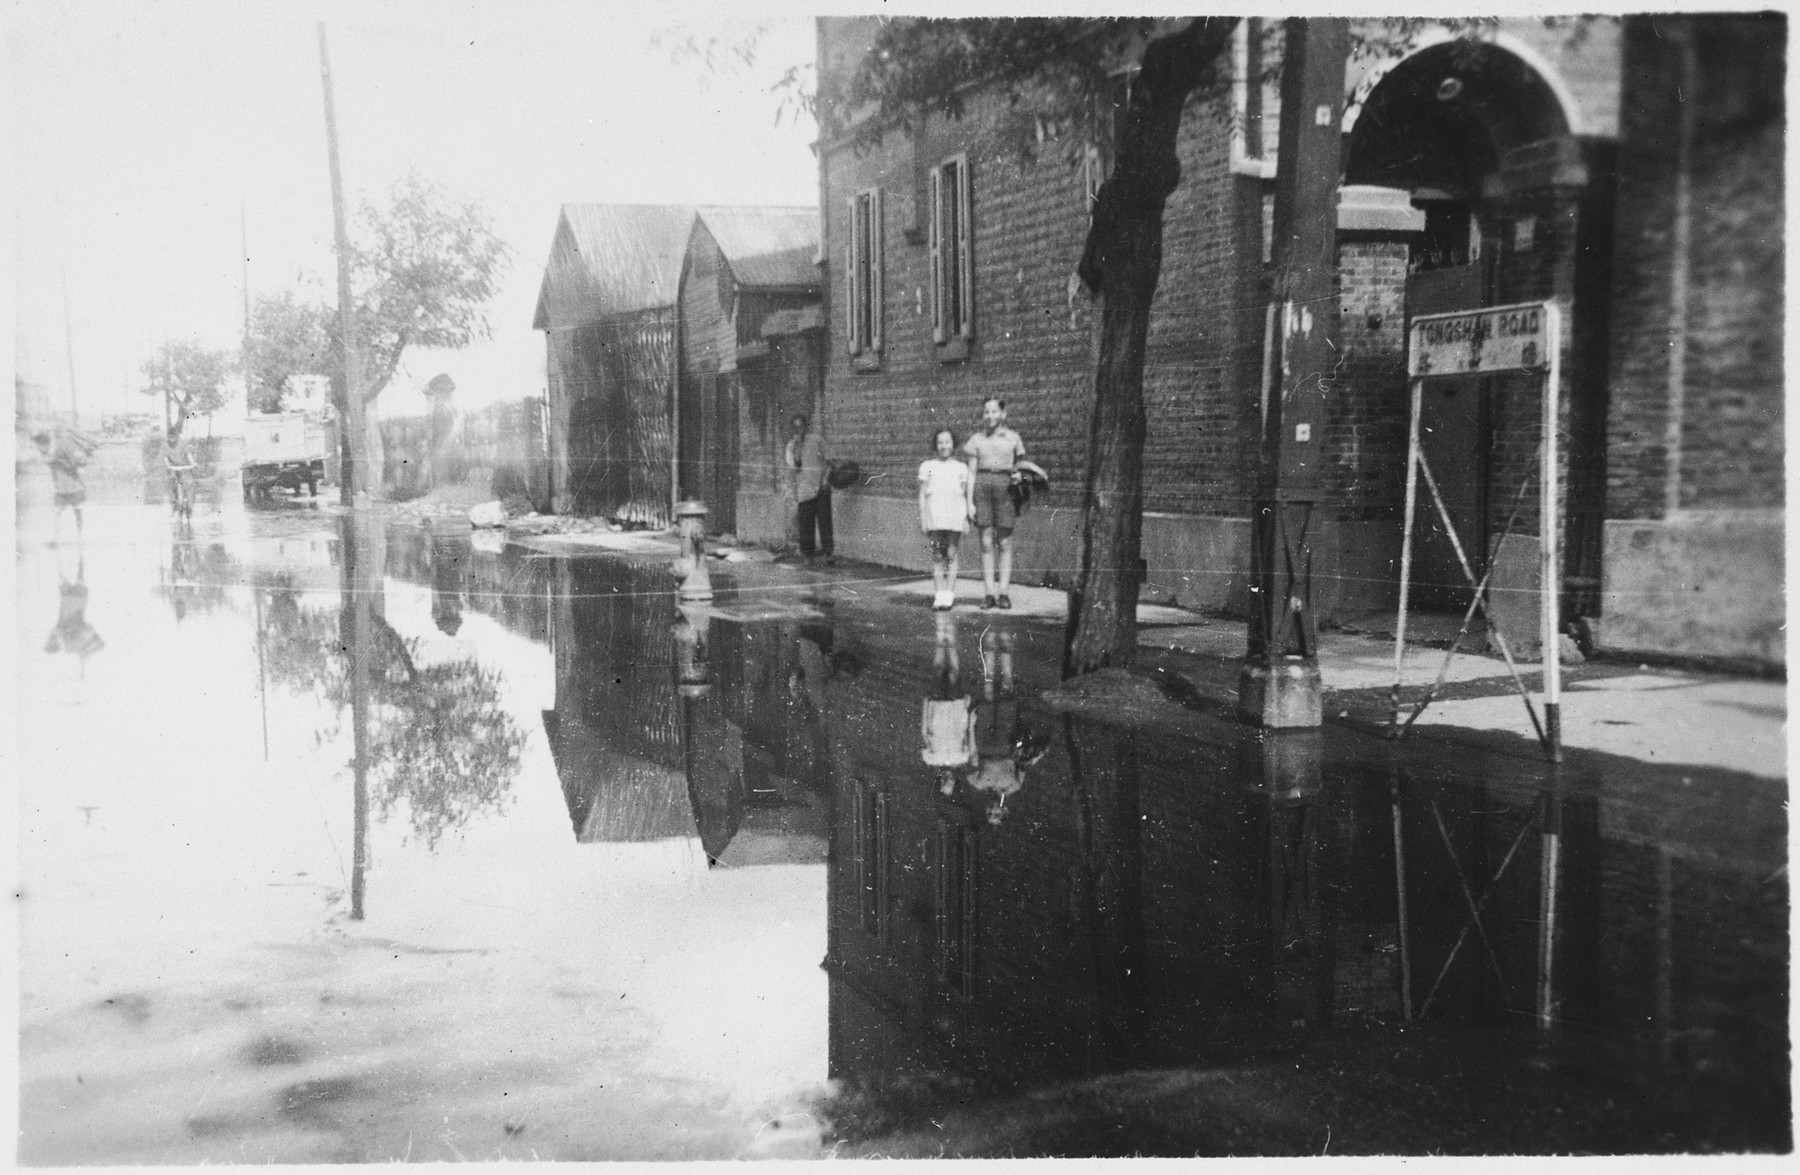 Peter and Marion Witting stand on a flooded street outside their home after a typhoon.